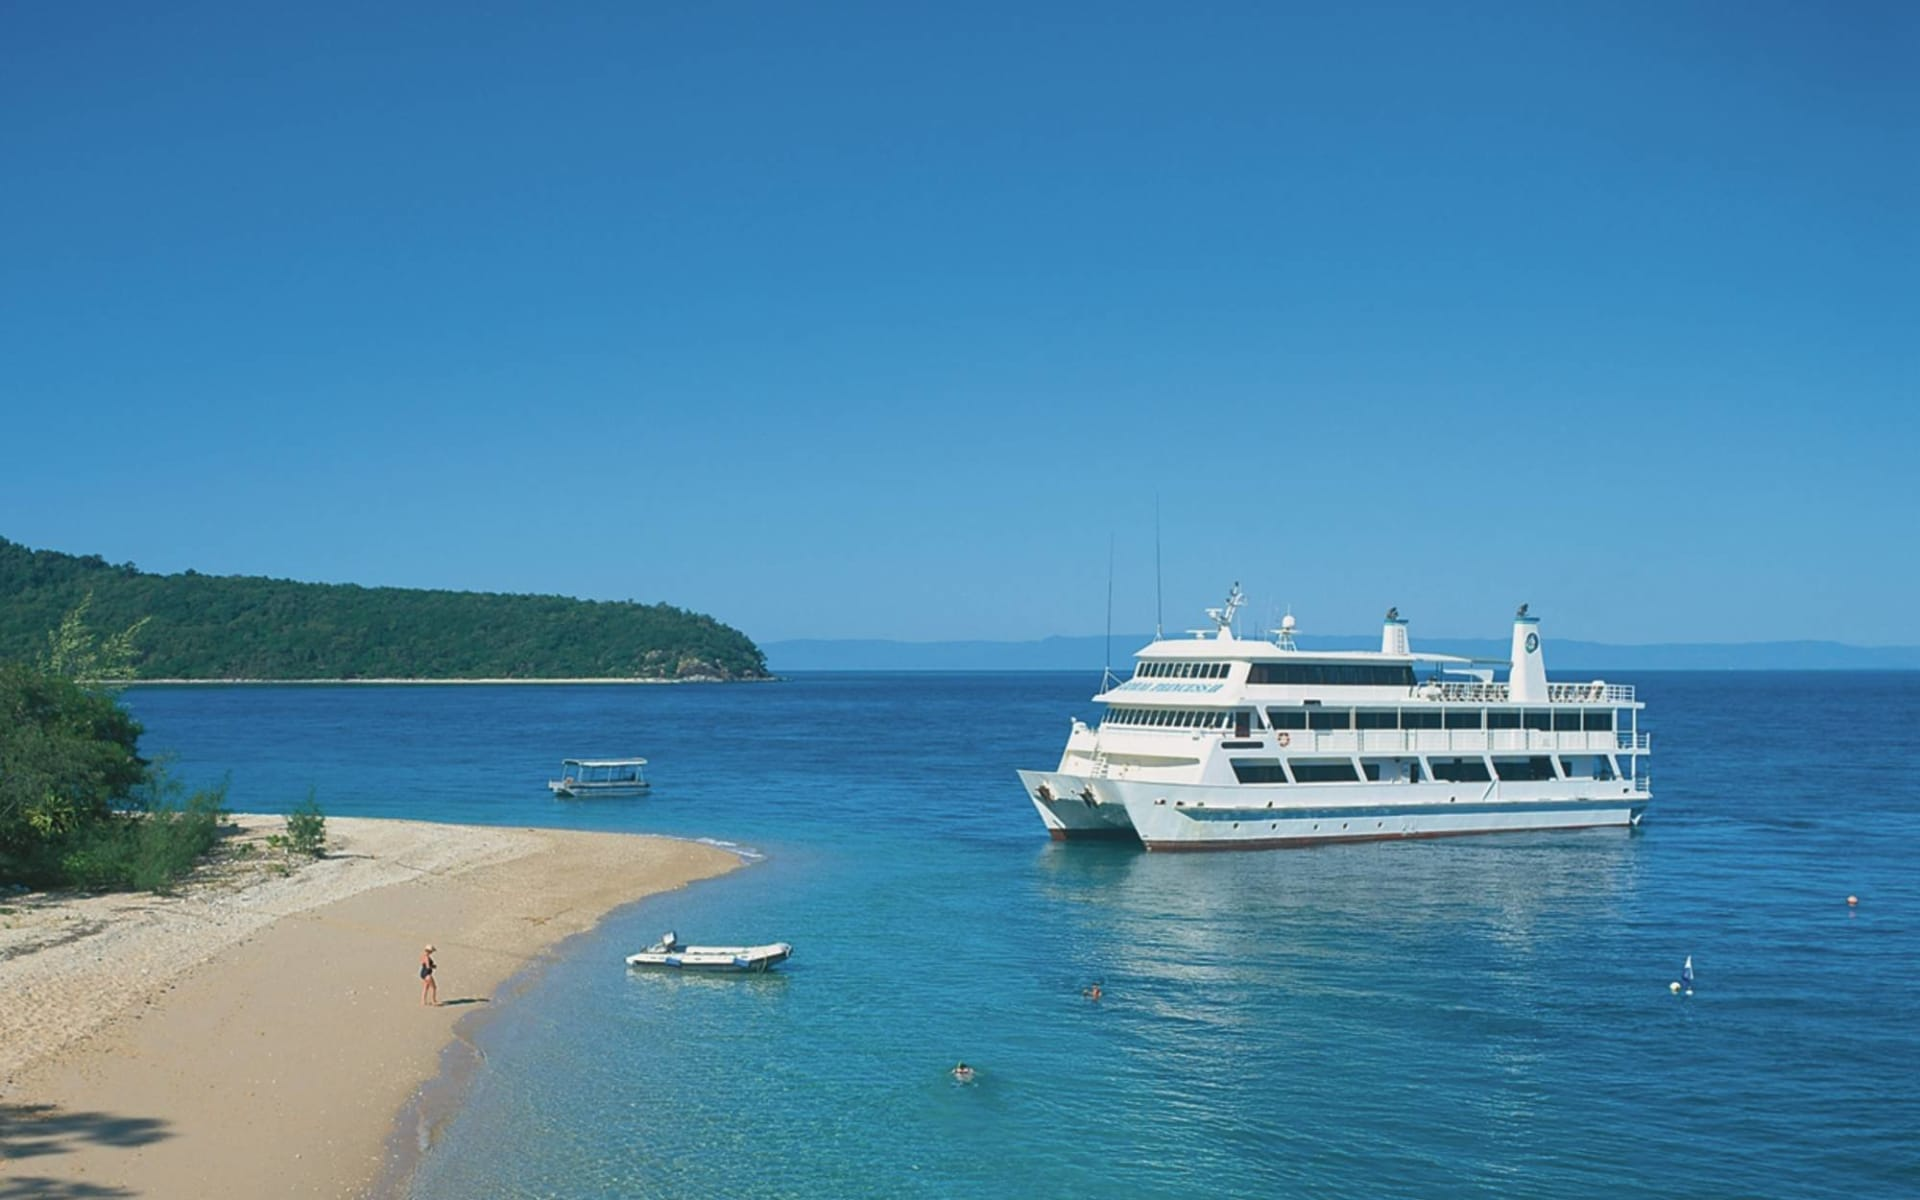 Coral Expeditions / südliches Barrier Reef ab Cairns: Great Barrier Reef - Expedition mit der Coral Expeditions II